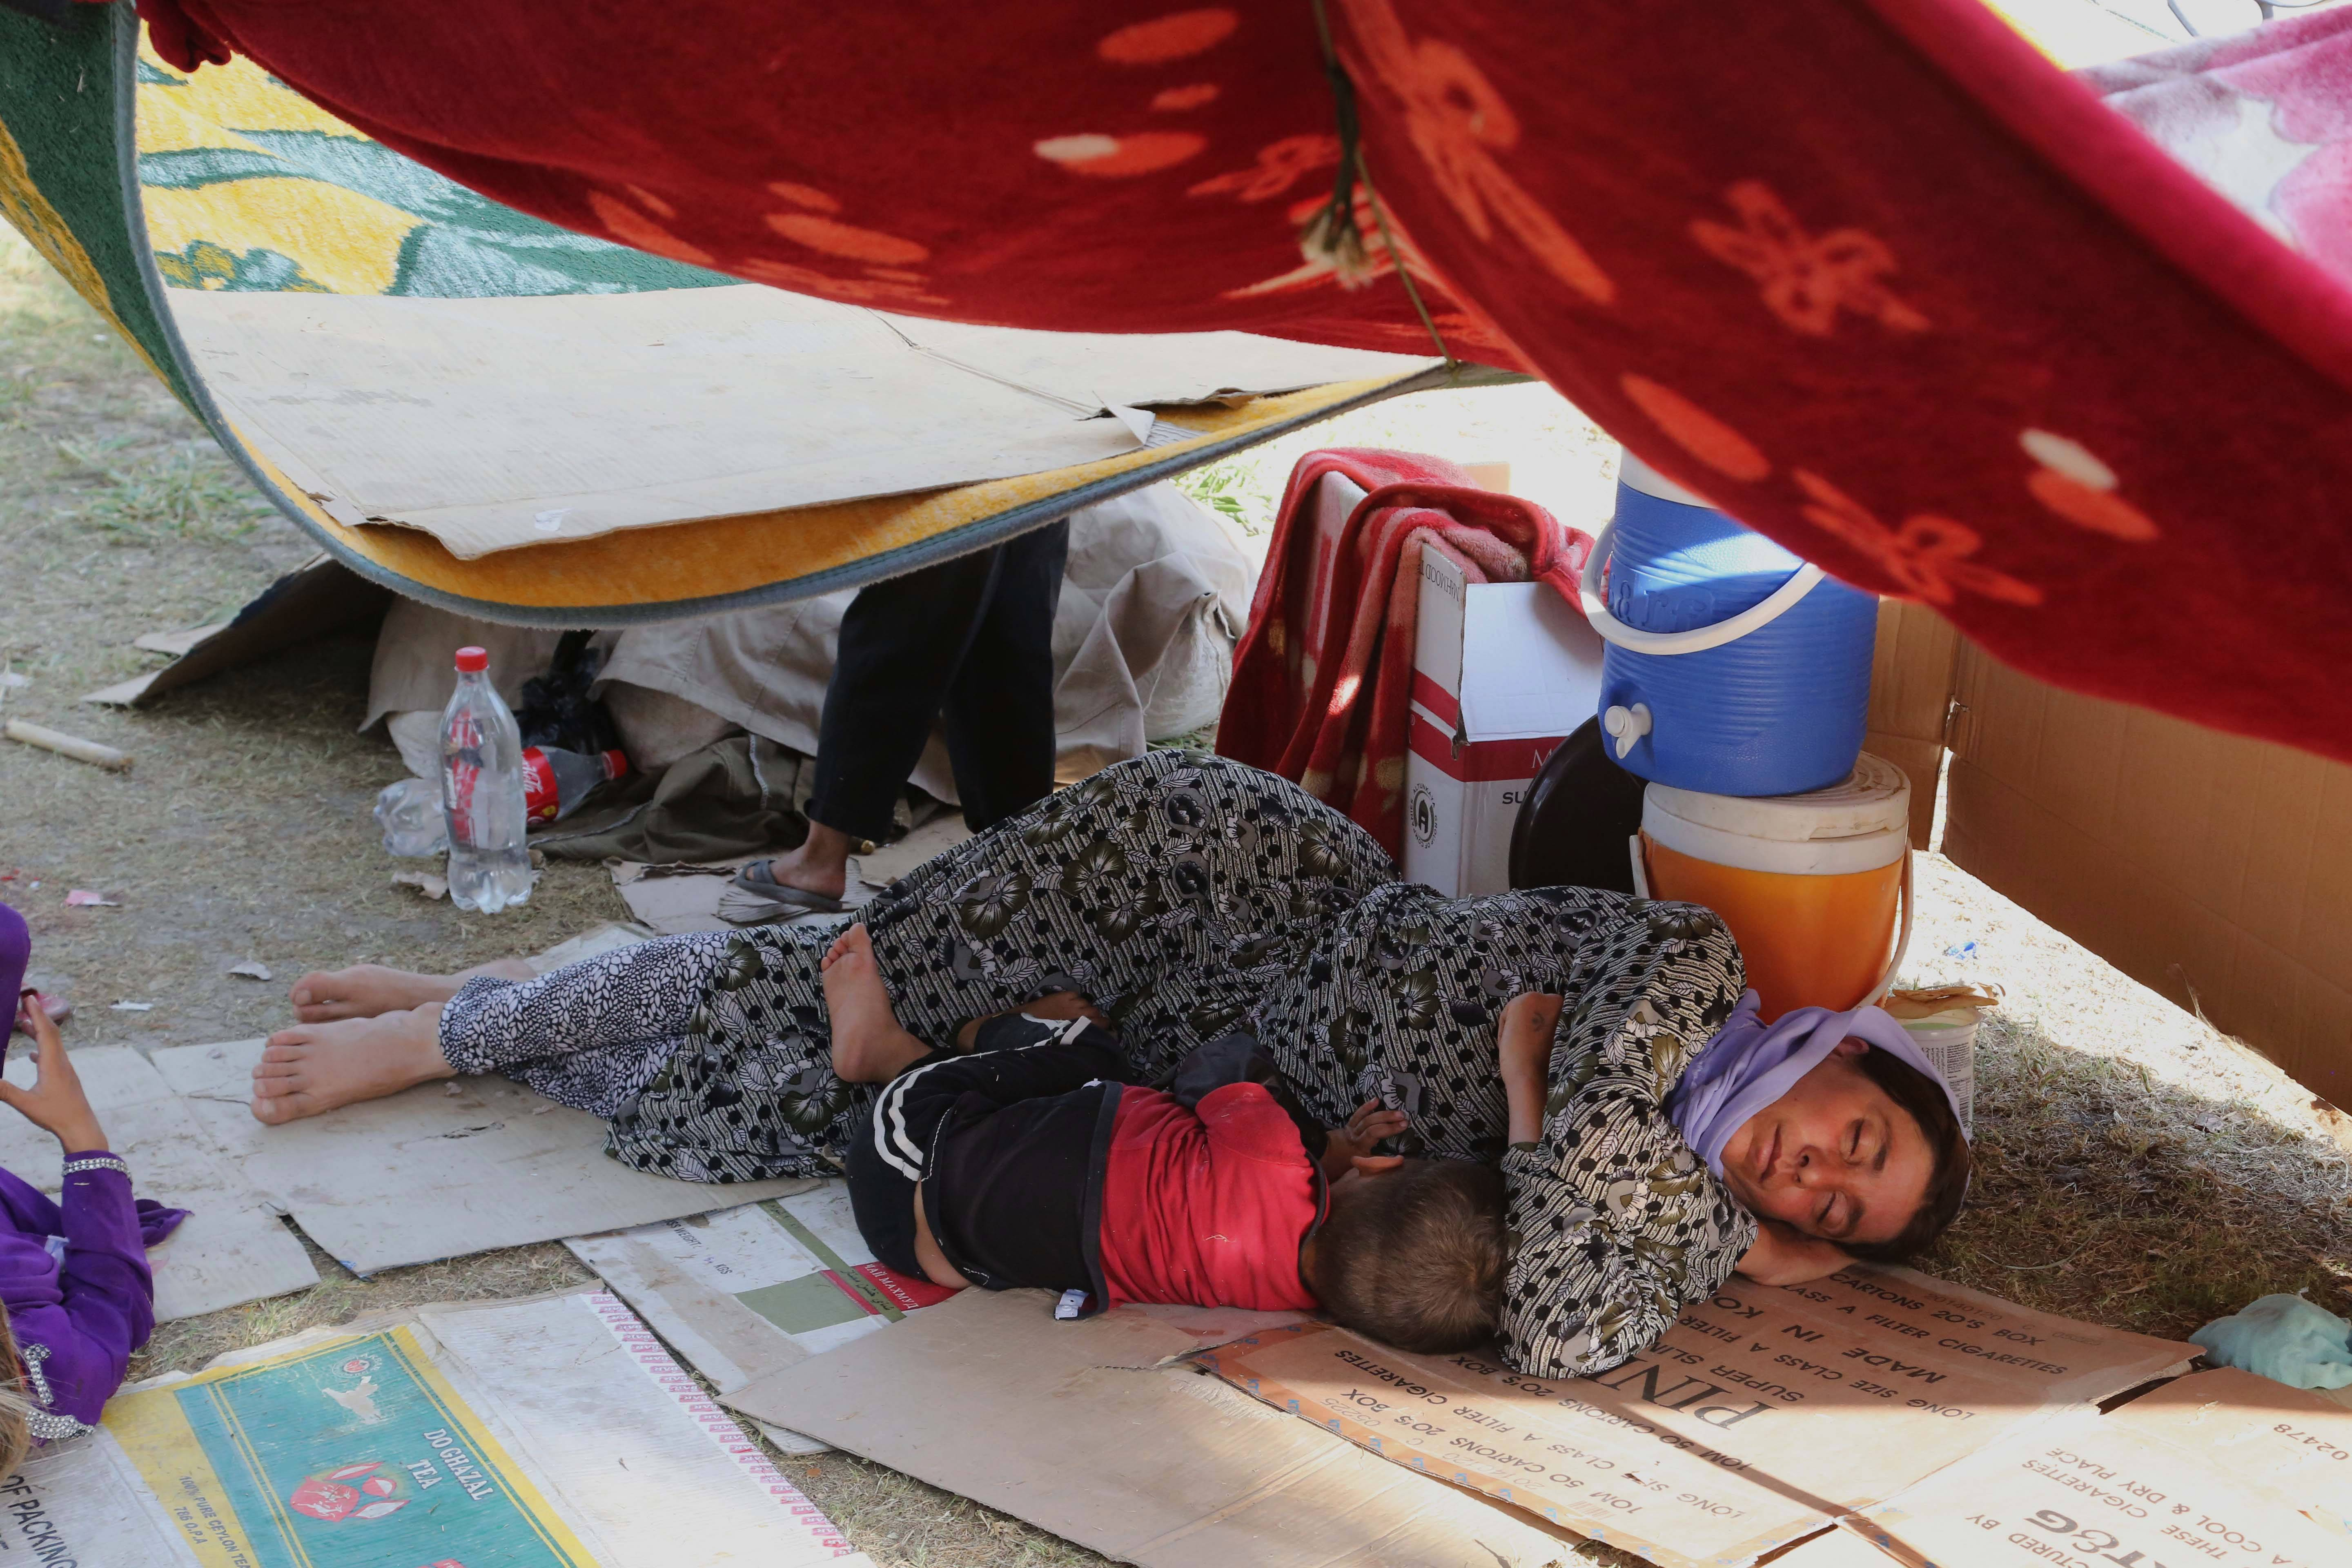 "An Iraqi woman and her son from the Yazidi community sleep at a park near the Turkey-Iraq border at the Ibrahim al-Khalil crossing, as they try to cross to Turkey, in Zakho, 300 miles northwest of Baghdad, Iraq, Friday, Aug. 15. The U.N. this week declared the situation in Iraq a ""Level 3 Emergency"" — a decision that came after some 45,000 members of the Yazidi religious minority were able to escape from a remote desert mountaintop where they had been encircled by Islamic State fighters. The extremist group views them as apostates and had vowed to kill any who did not convert to Islam."